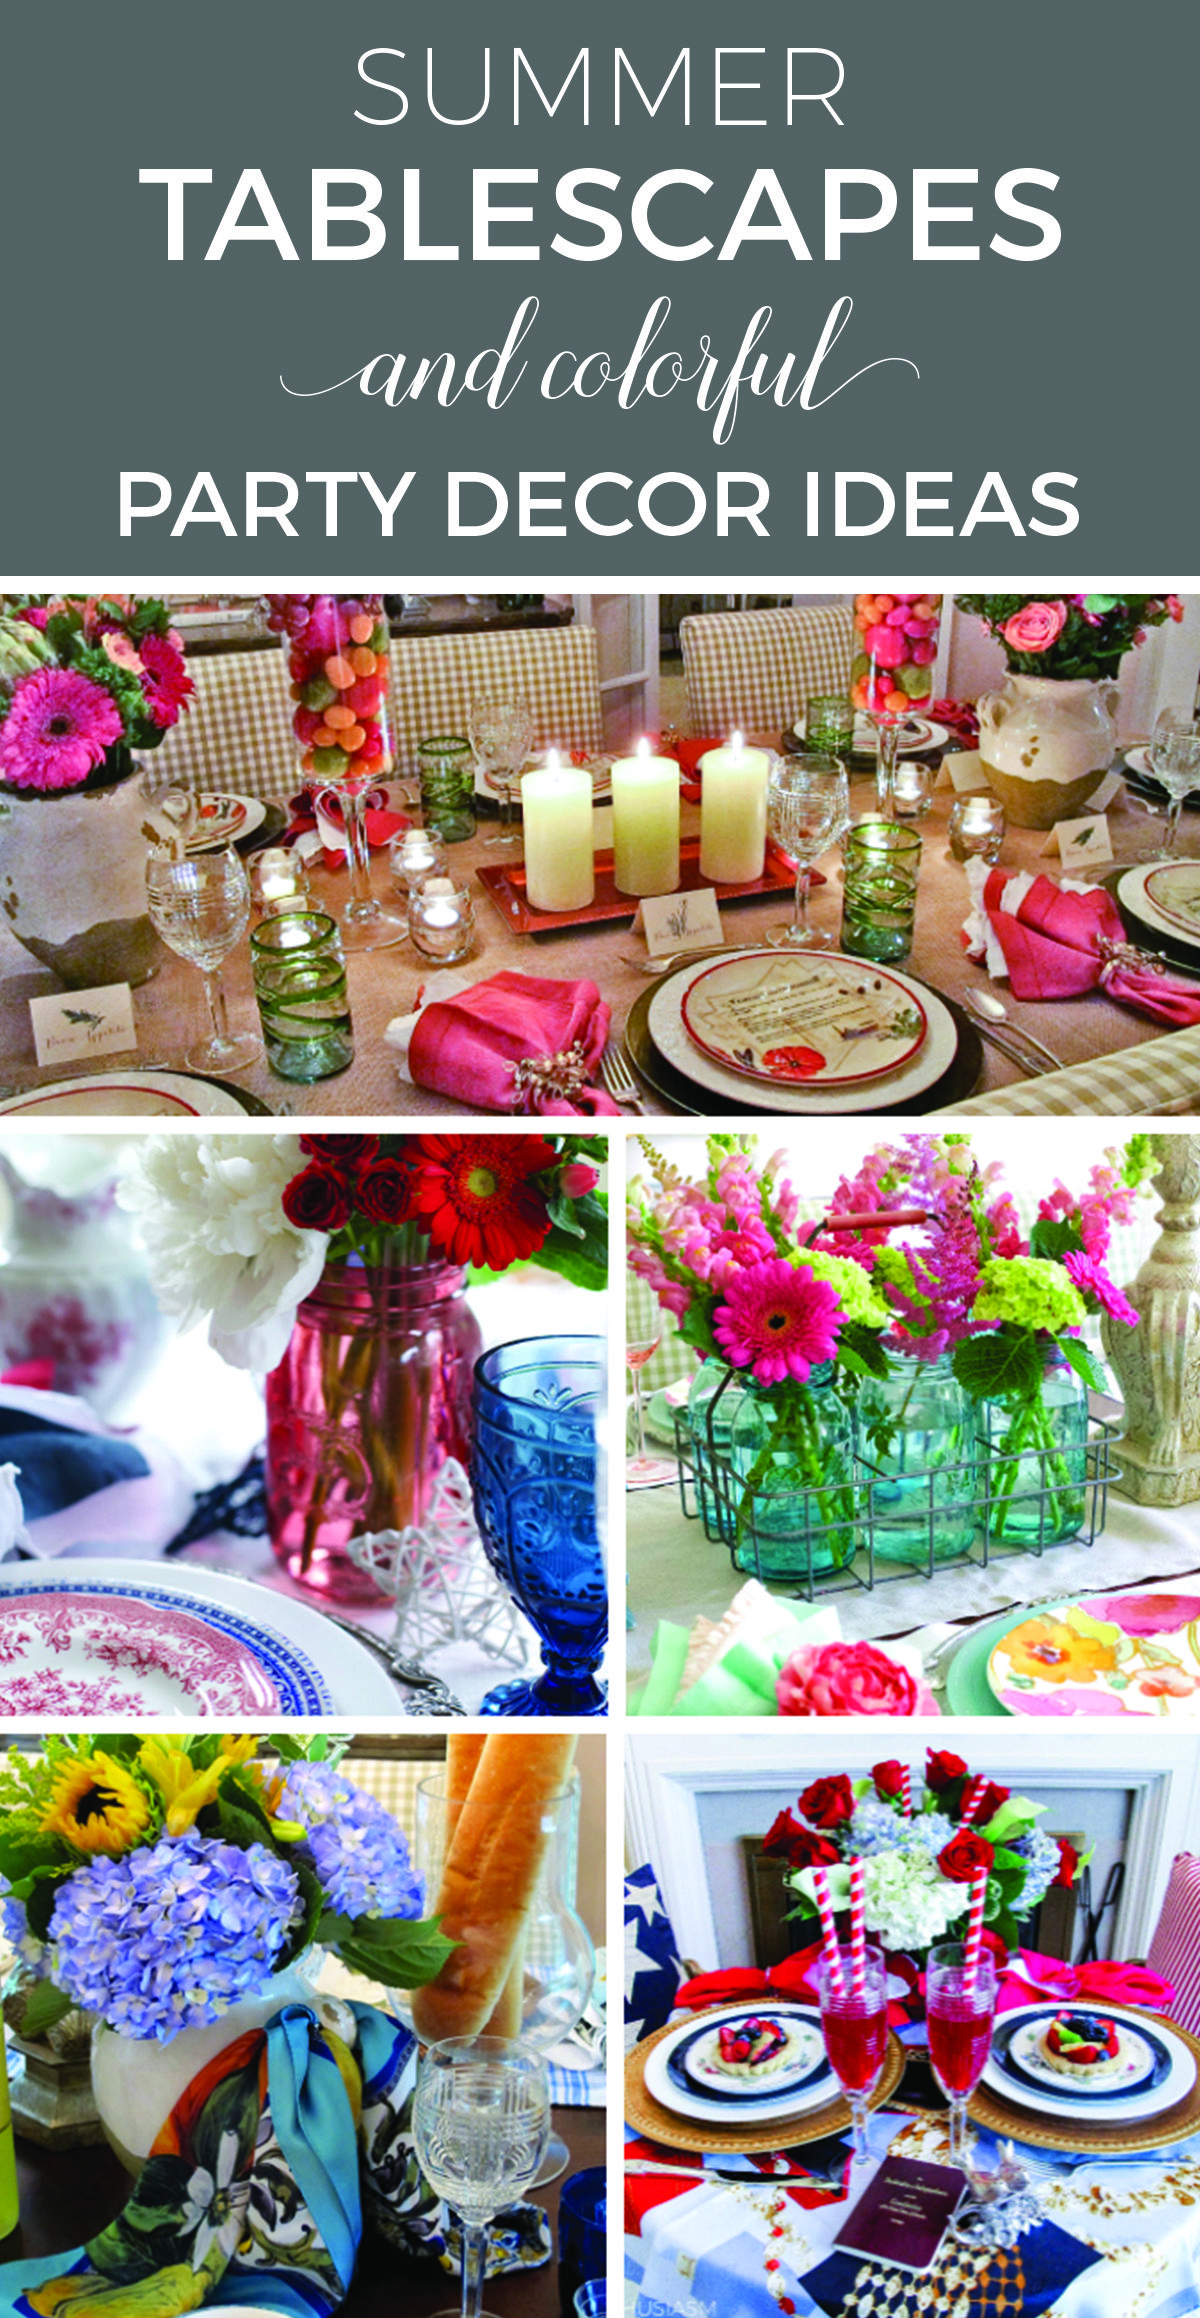 We Love The Fresh Blooms Featured In These Summer Tablescapes And Colorful  Party Decor Ideas. Whether Youu0027re Looking For Inspiration For Of July Or  Just A ...